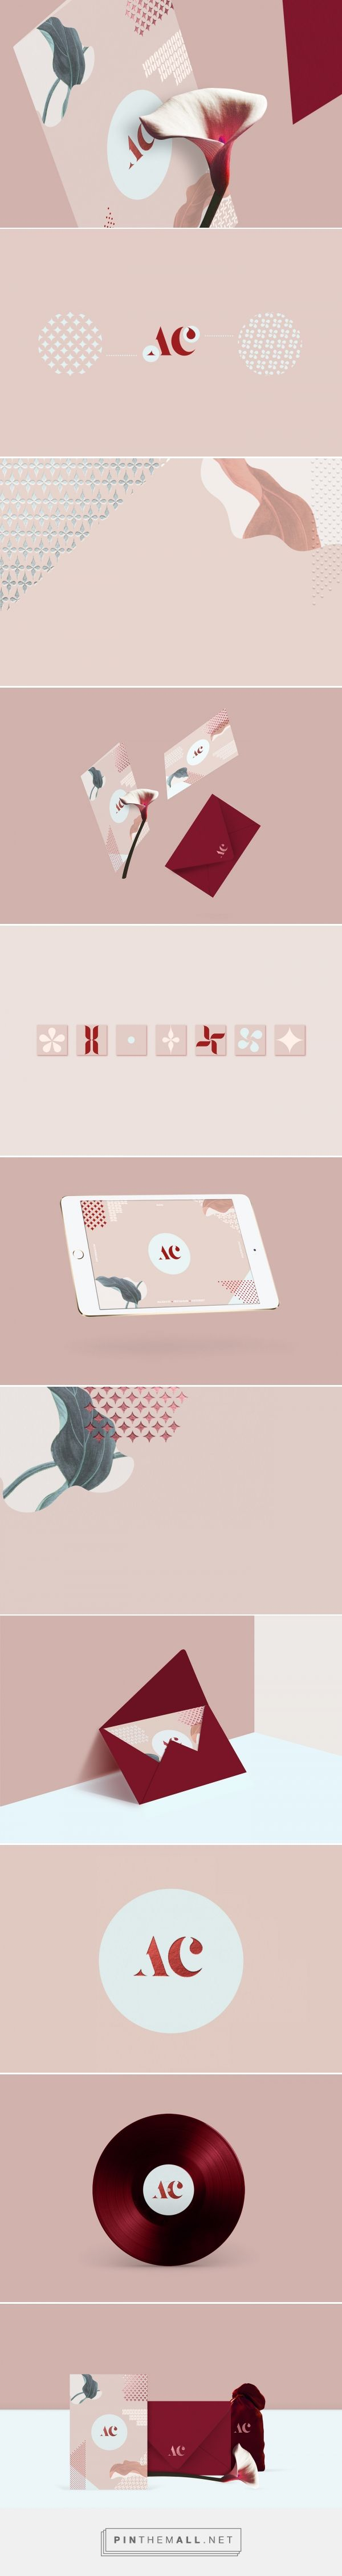 AC Branding by Maria Hdez on Behance | Fivestar Branding – Design and Branding Agency & Inspiration Gallery